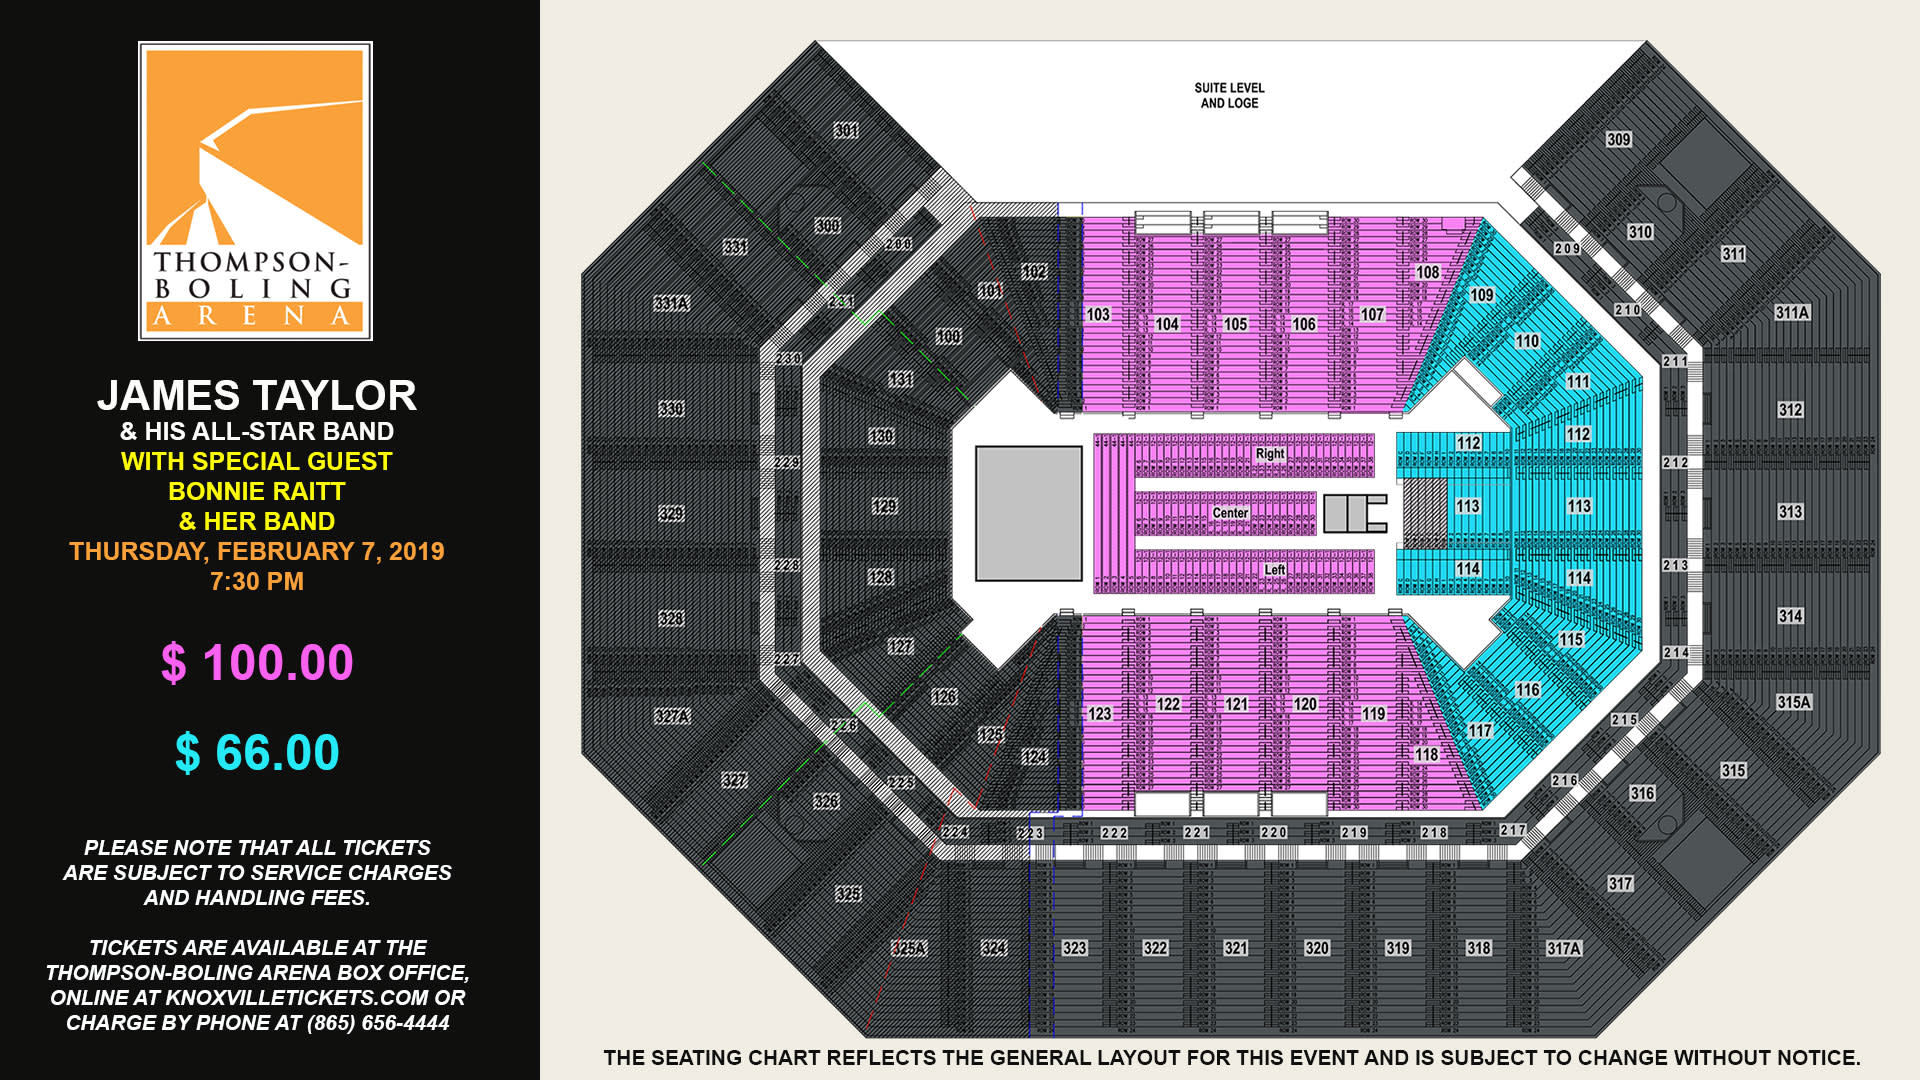 James Taylor 2019 Seating Map